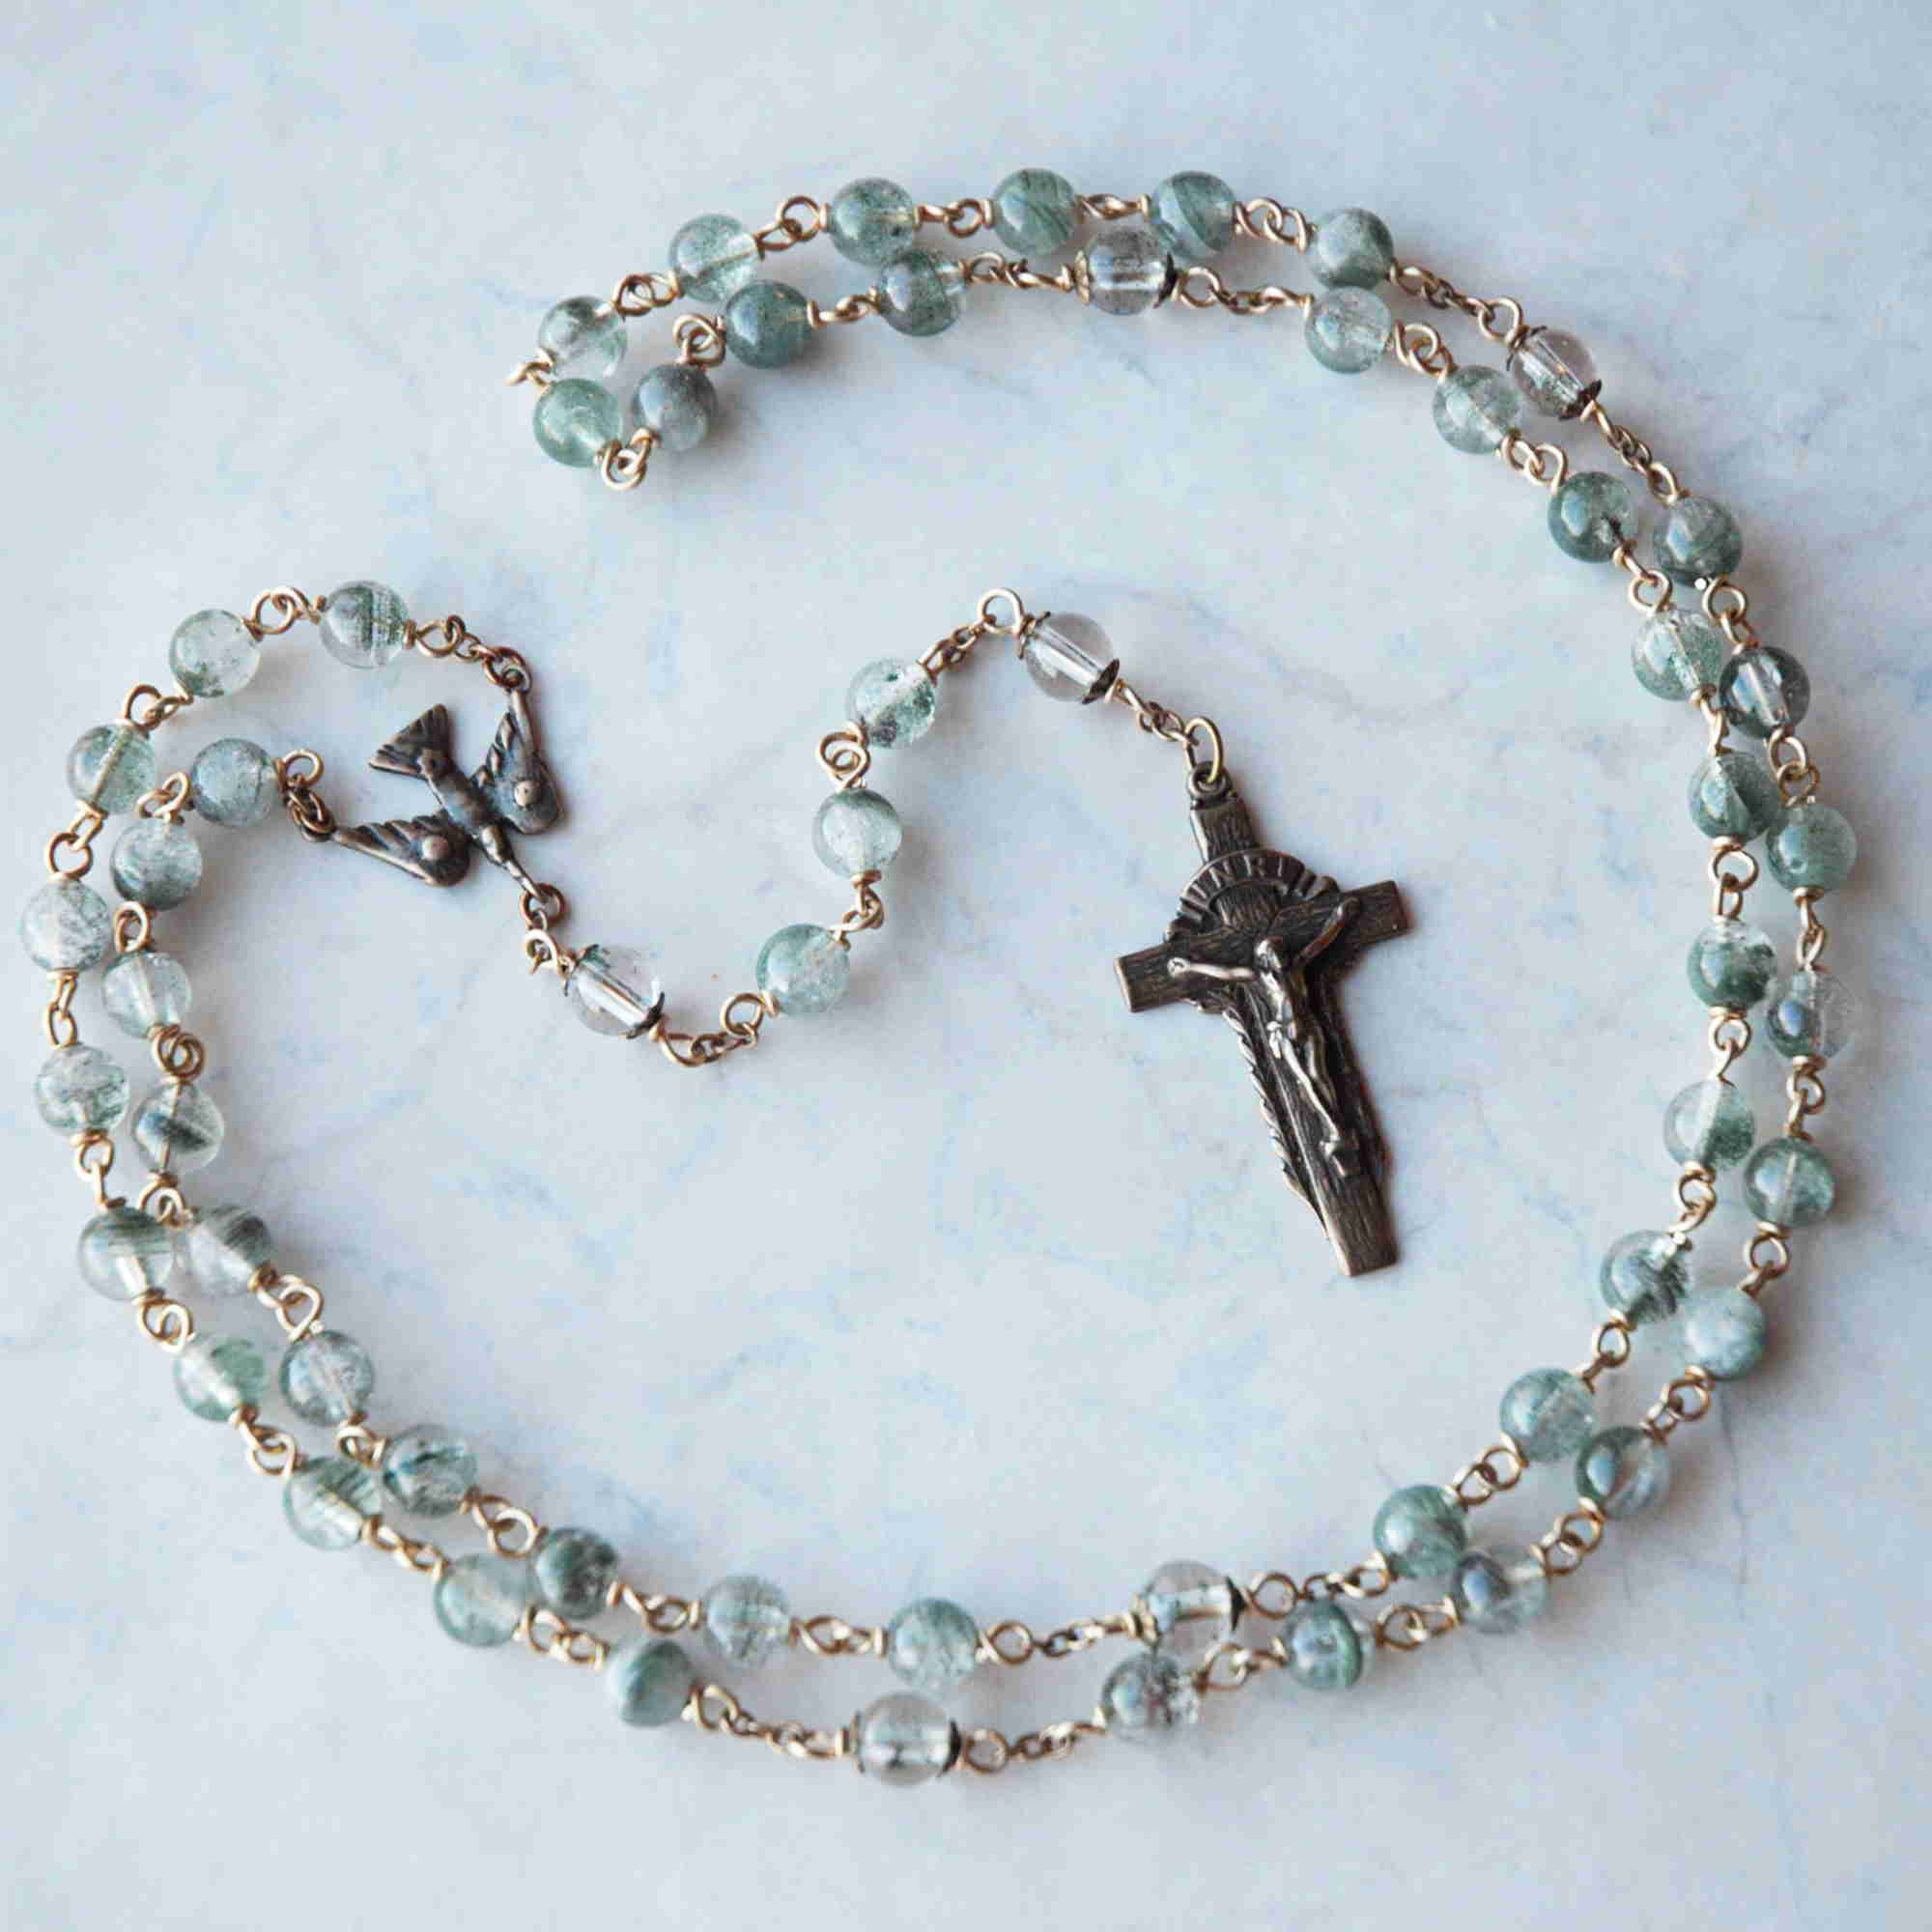 Bronze handmade rosary in Green Striae Lodalite by Jennifer Sinclair, owner of Miracoli Rosaries